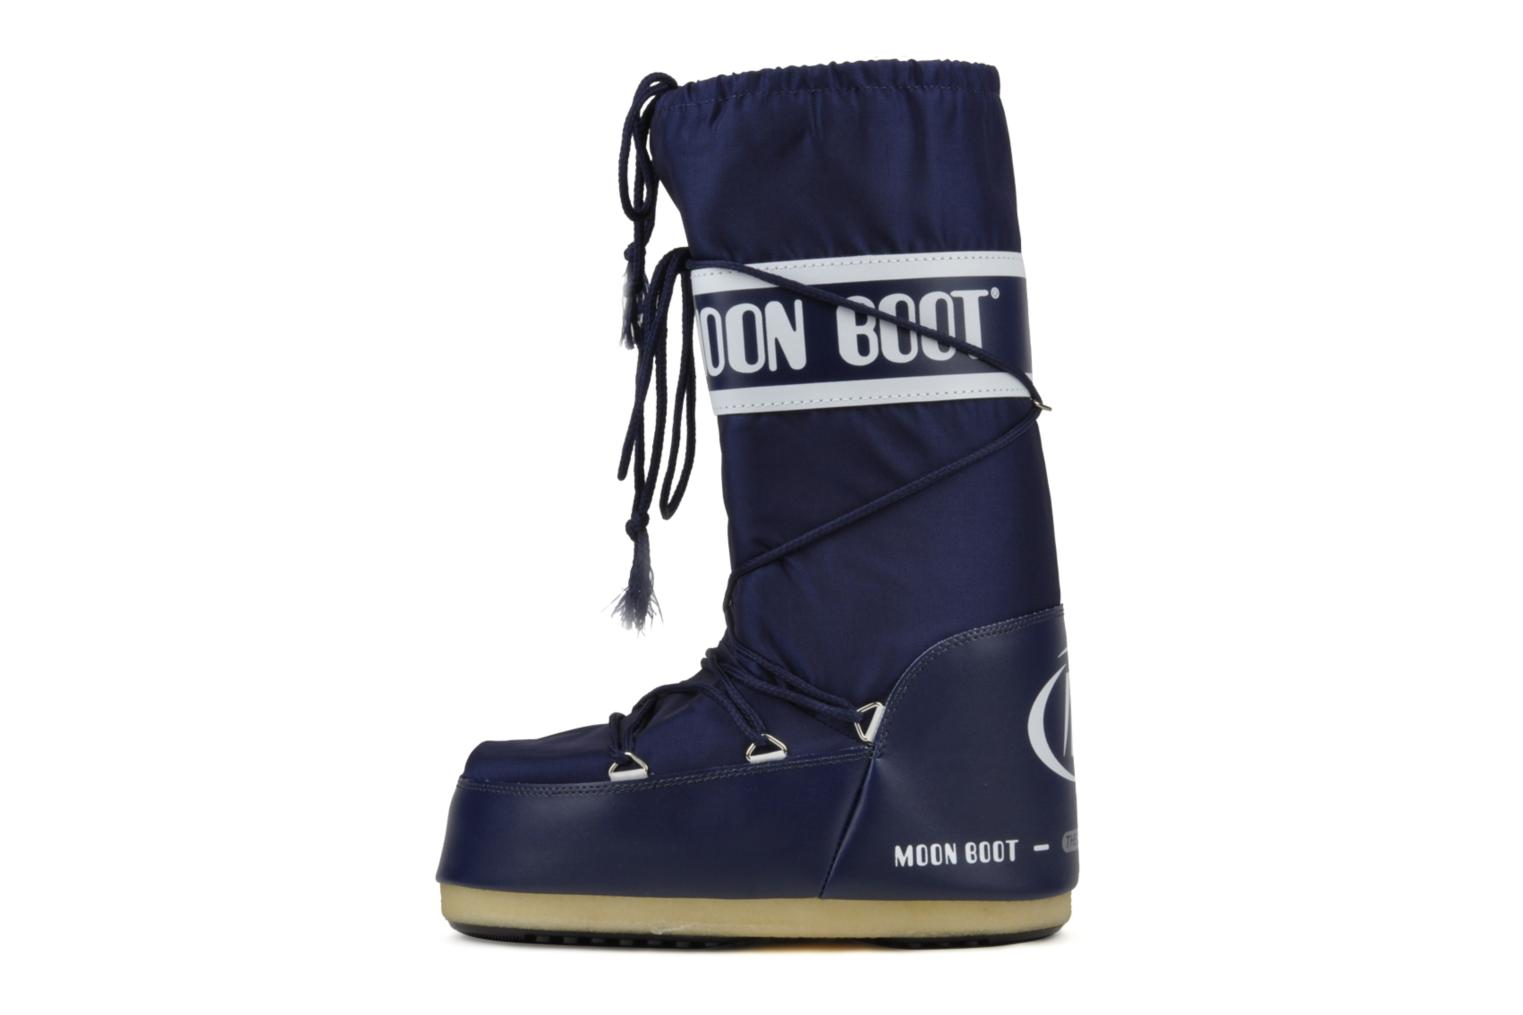 Moon Boot Nylon Bleu